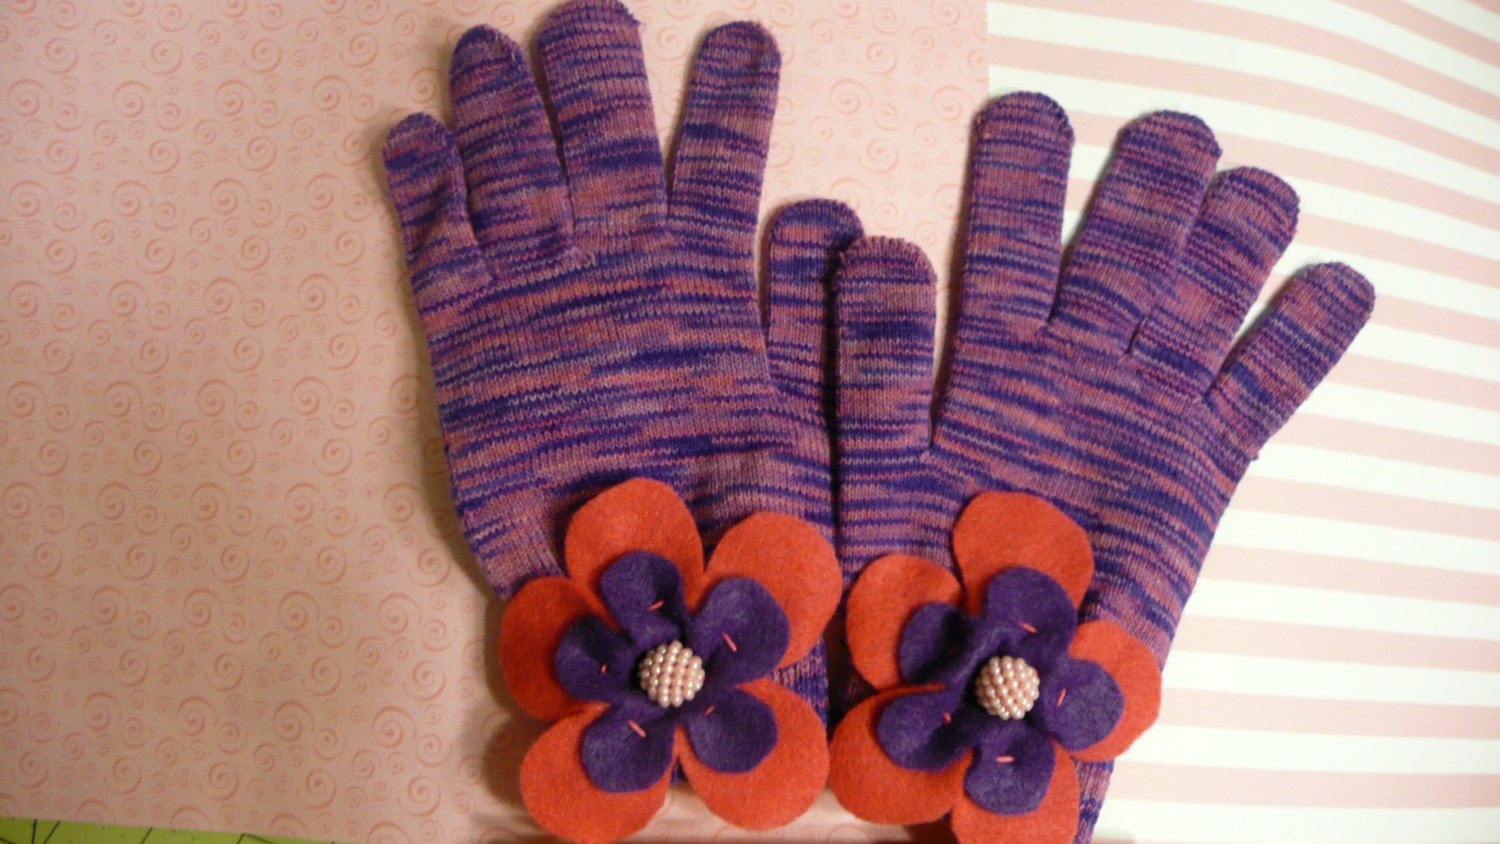 Pink and purple knit gloves with flowers - OWLvsOCTOPI